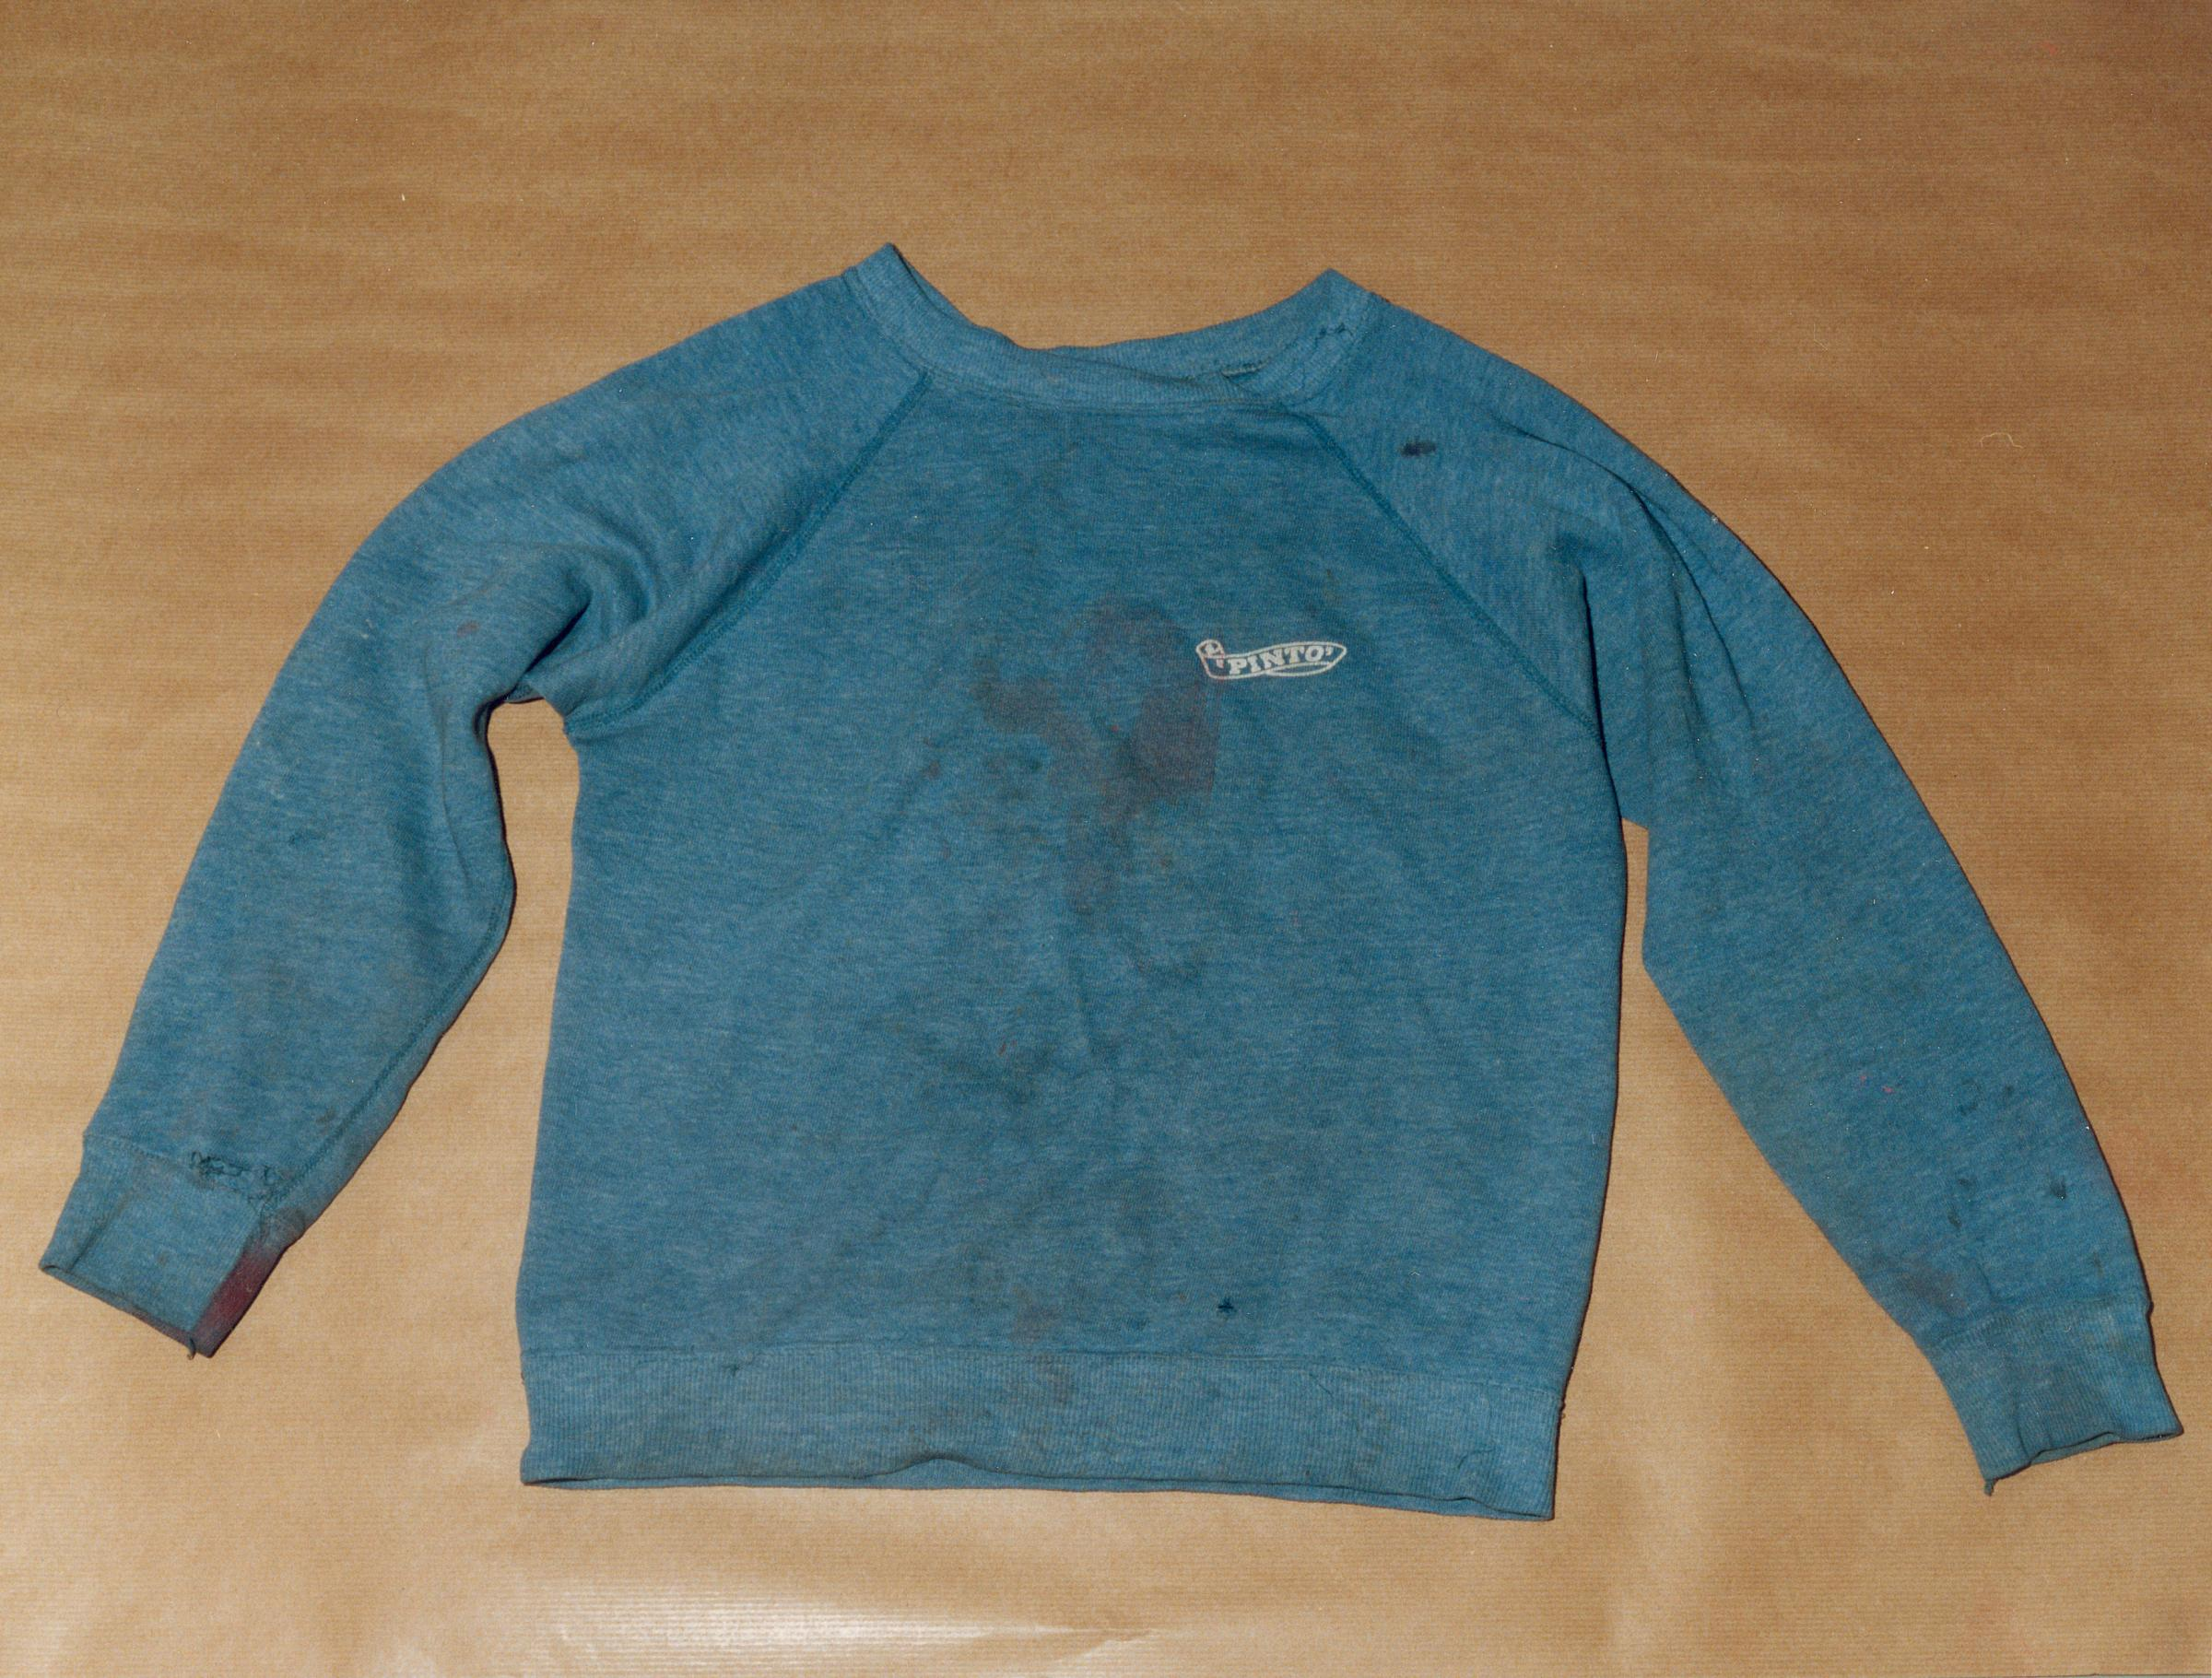 NOT FOR USE AFTER 30th JANUARY 2019 Undated handout photo issued by Sussex Police of a blue Pinto sweatshirt, allegedly worn by Russell Bishop and said to contain vital DNA evidence, which was found beside a path behind Moulsecoomb railway station.